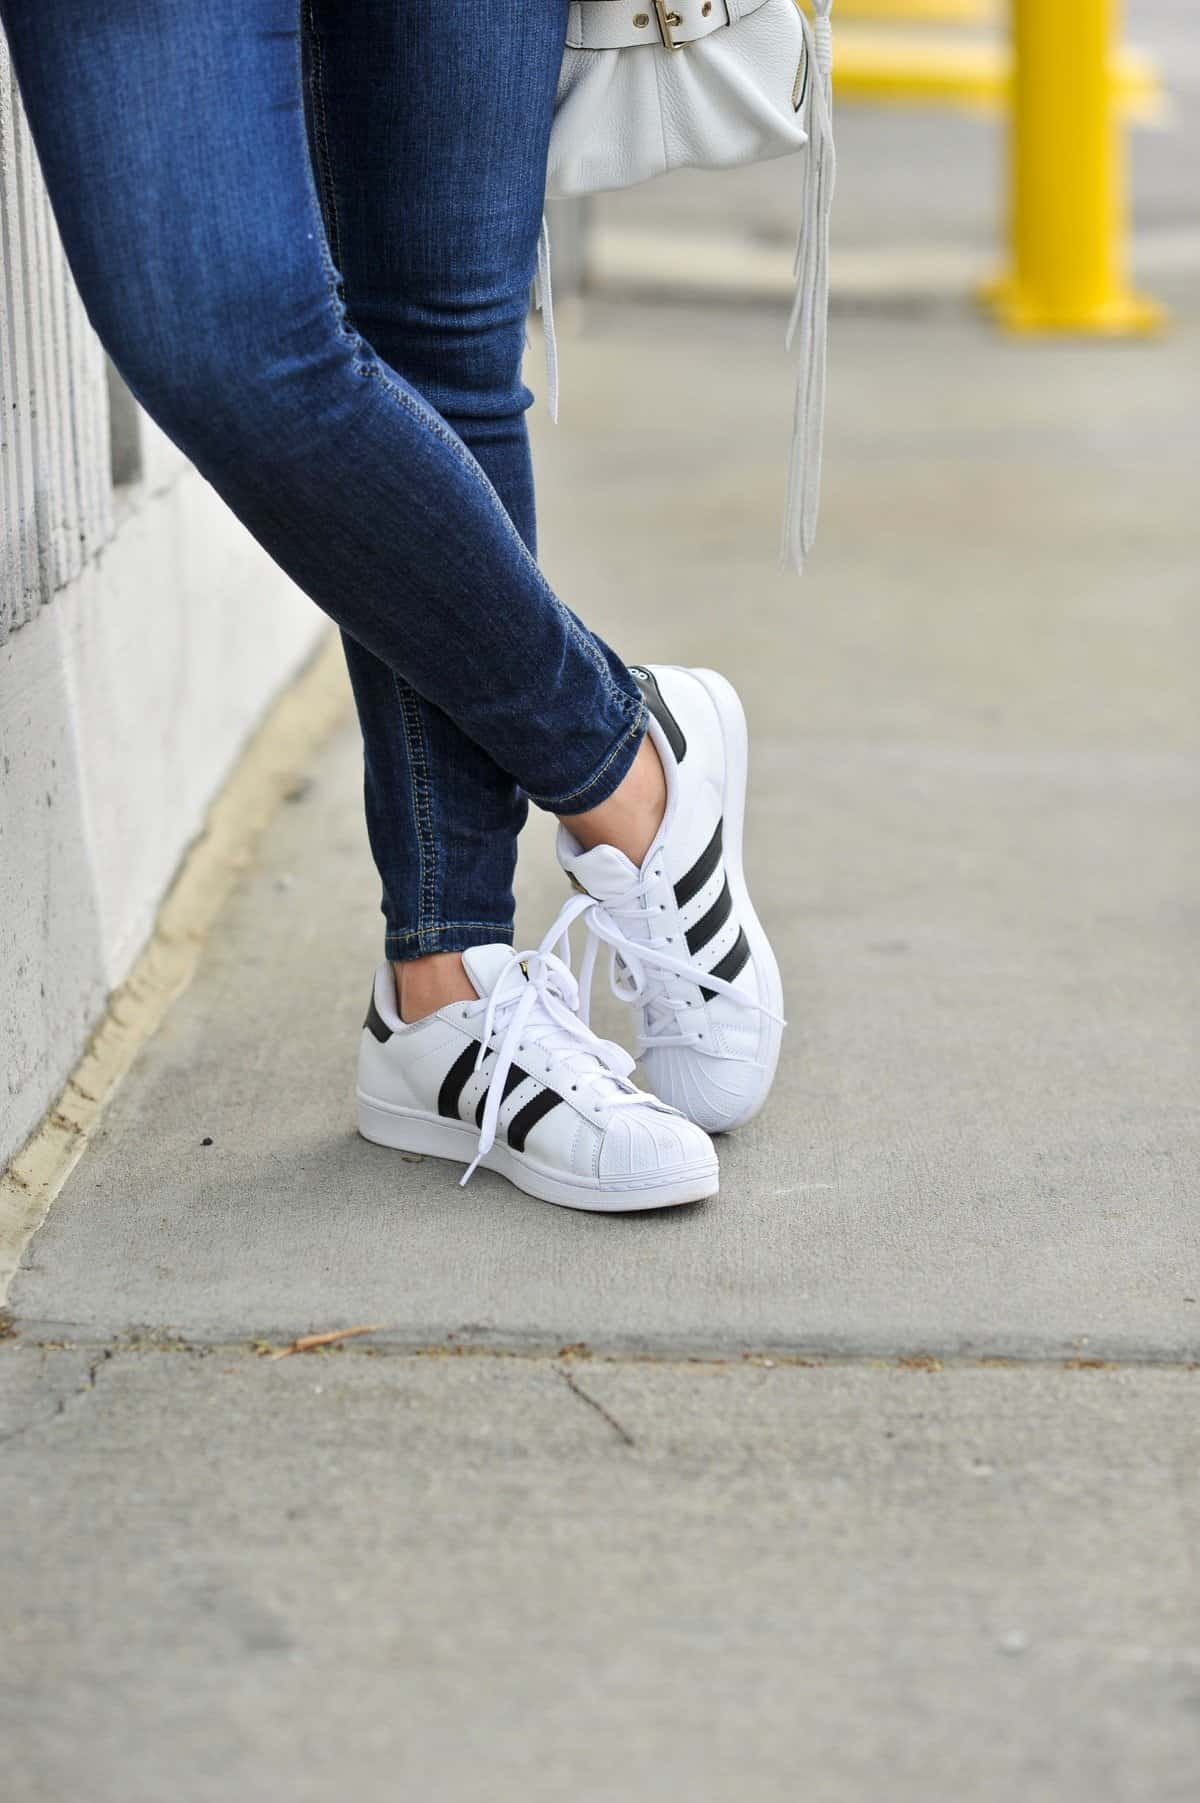 how to style adidas superstars, Adidas superstars with jeans - My Style Vita